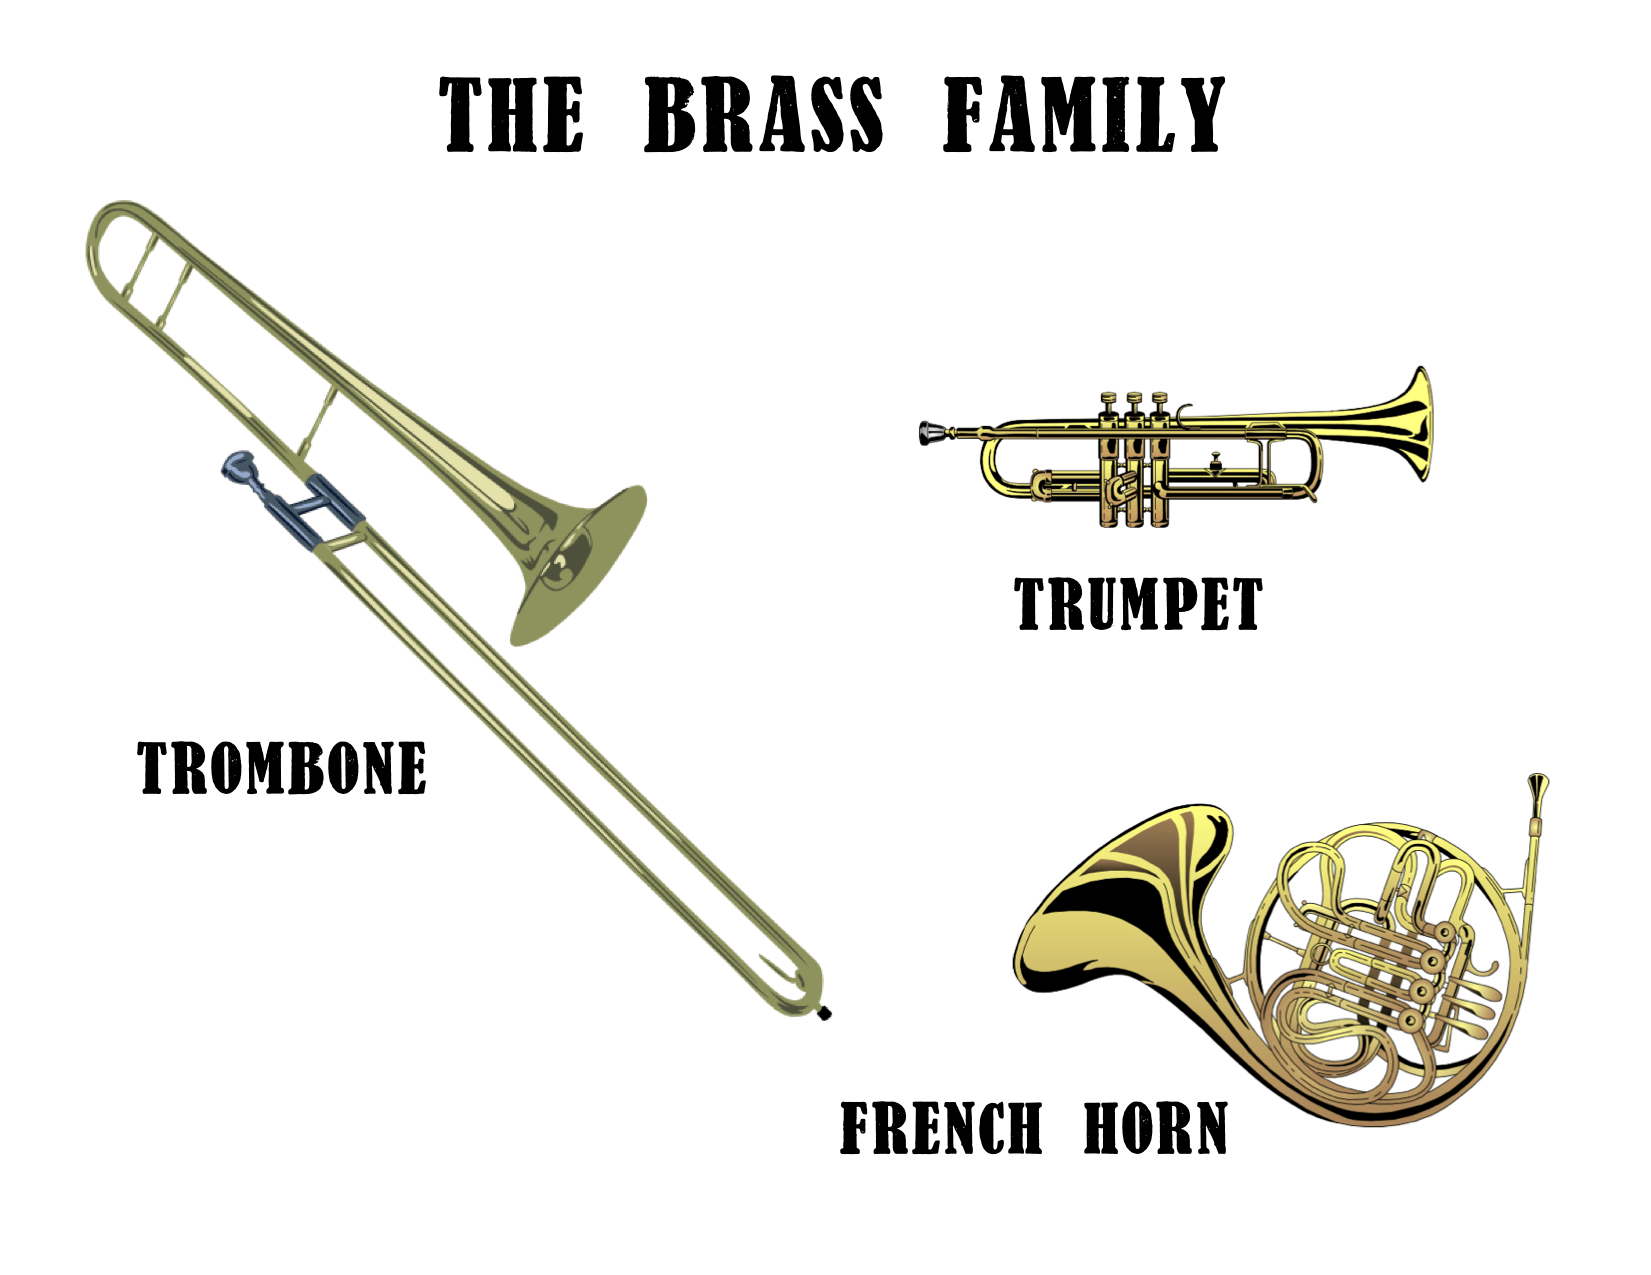 The Brass Family To play a brass instrument you need to